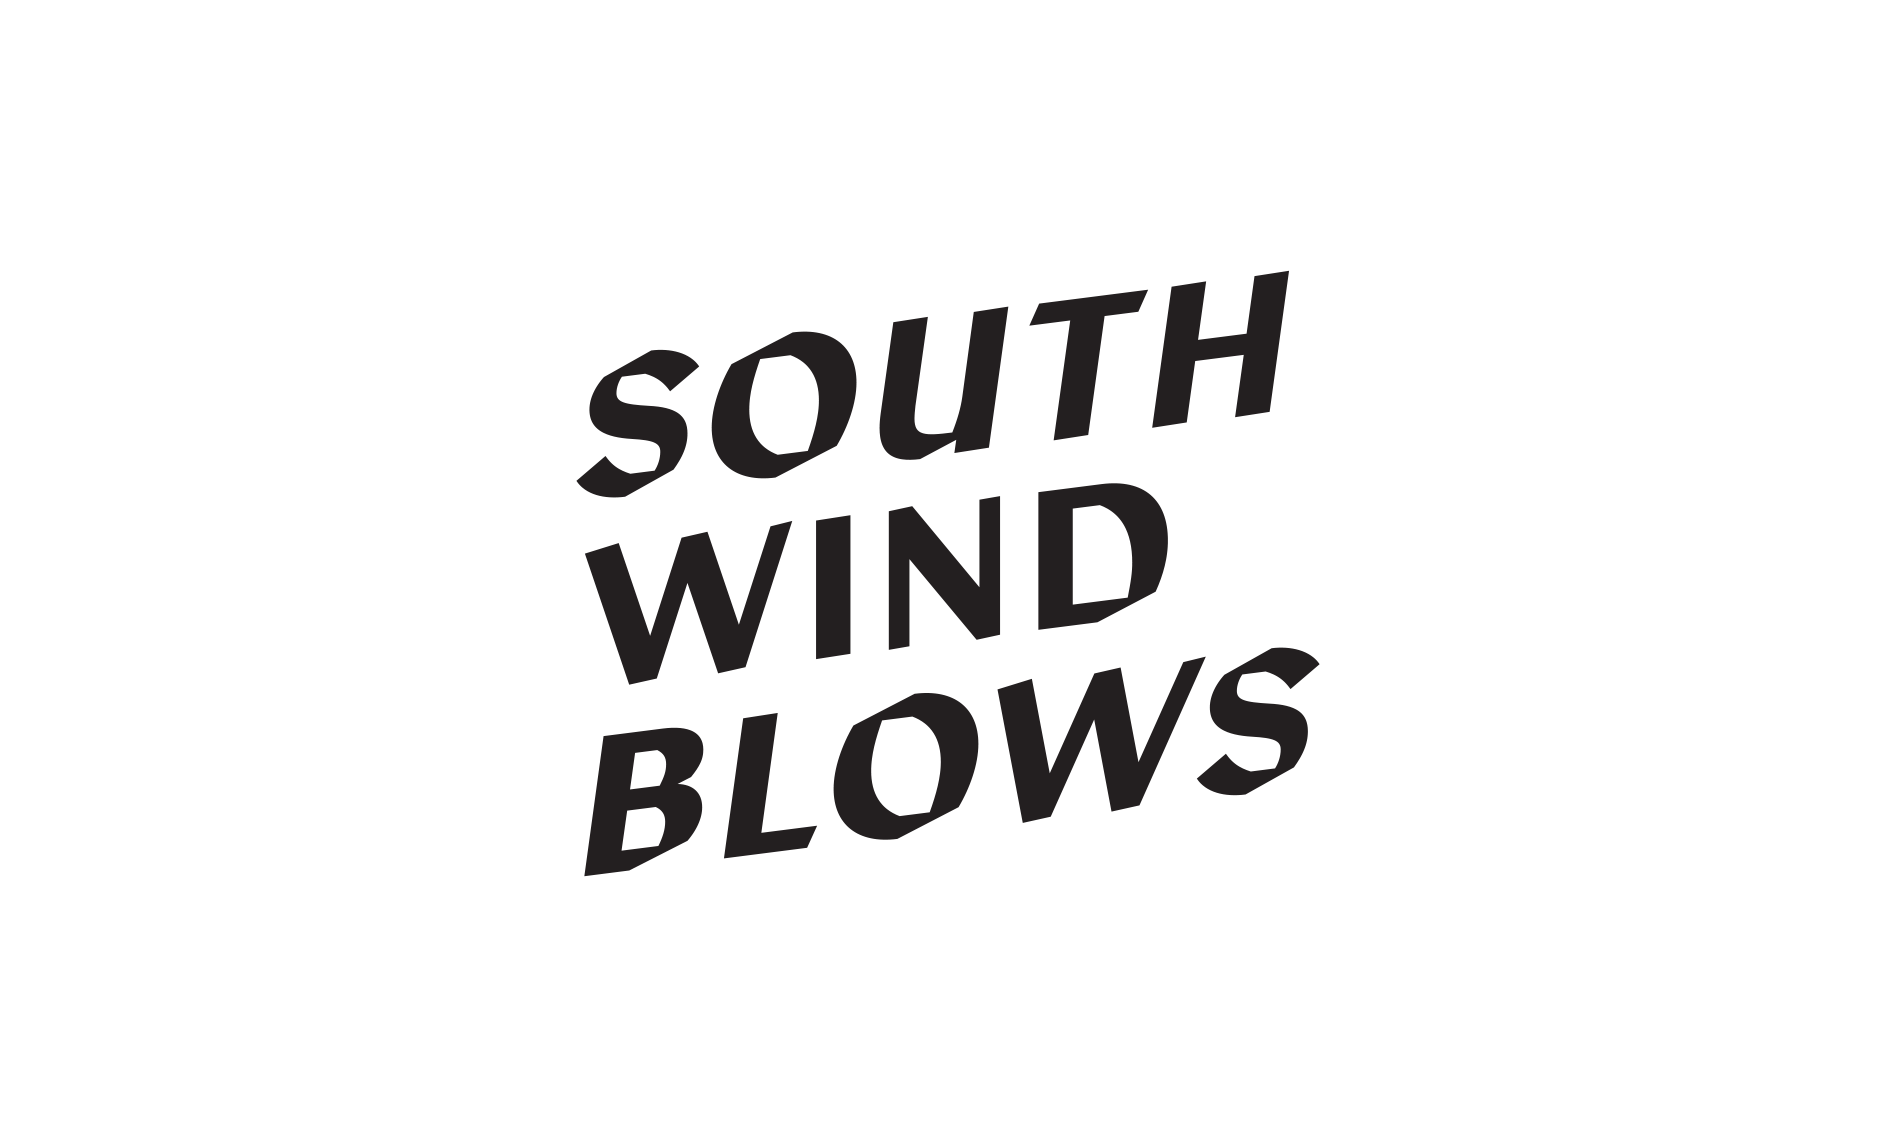 SOUTH WIND BLOWS